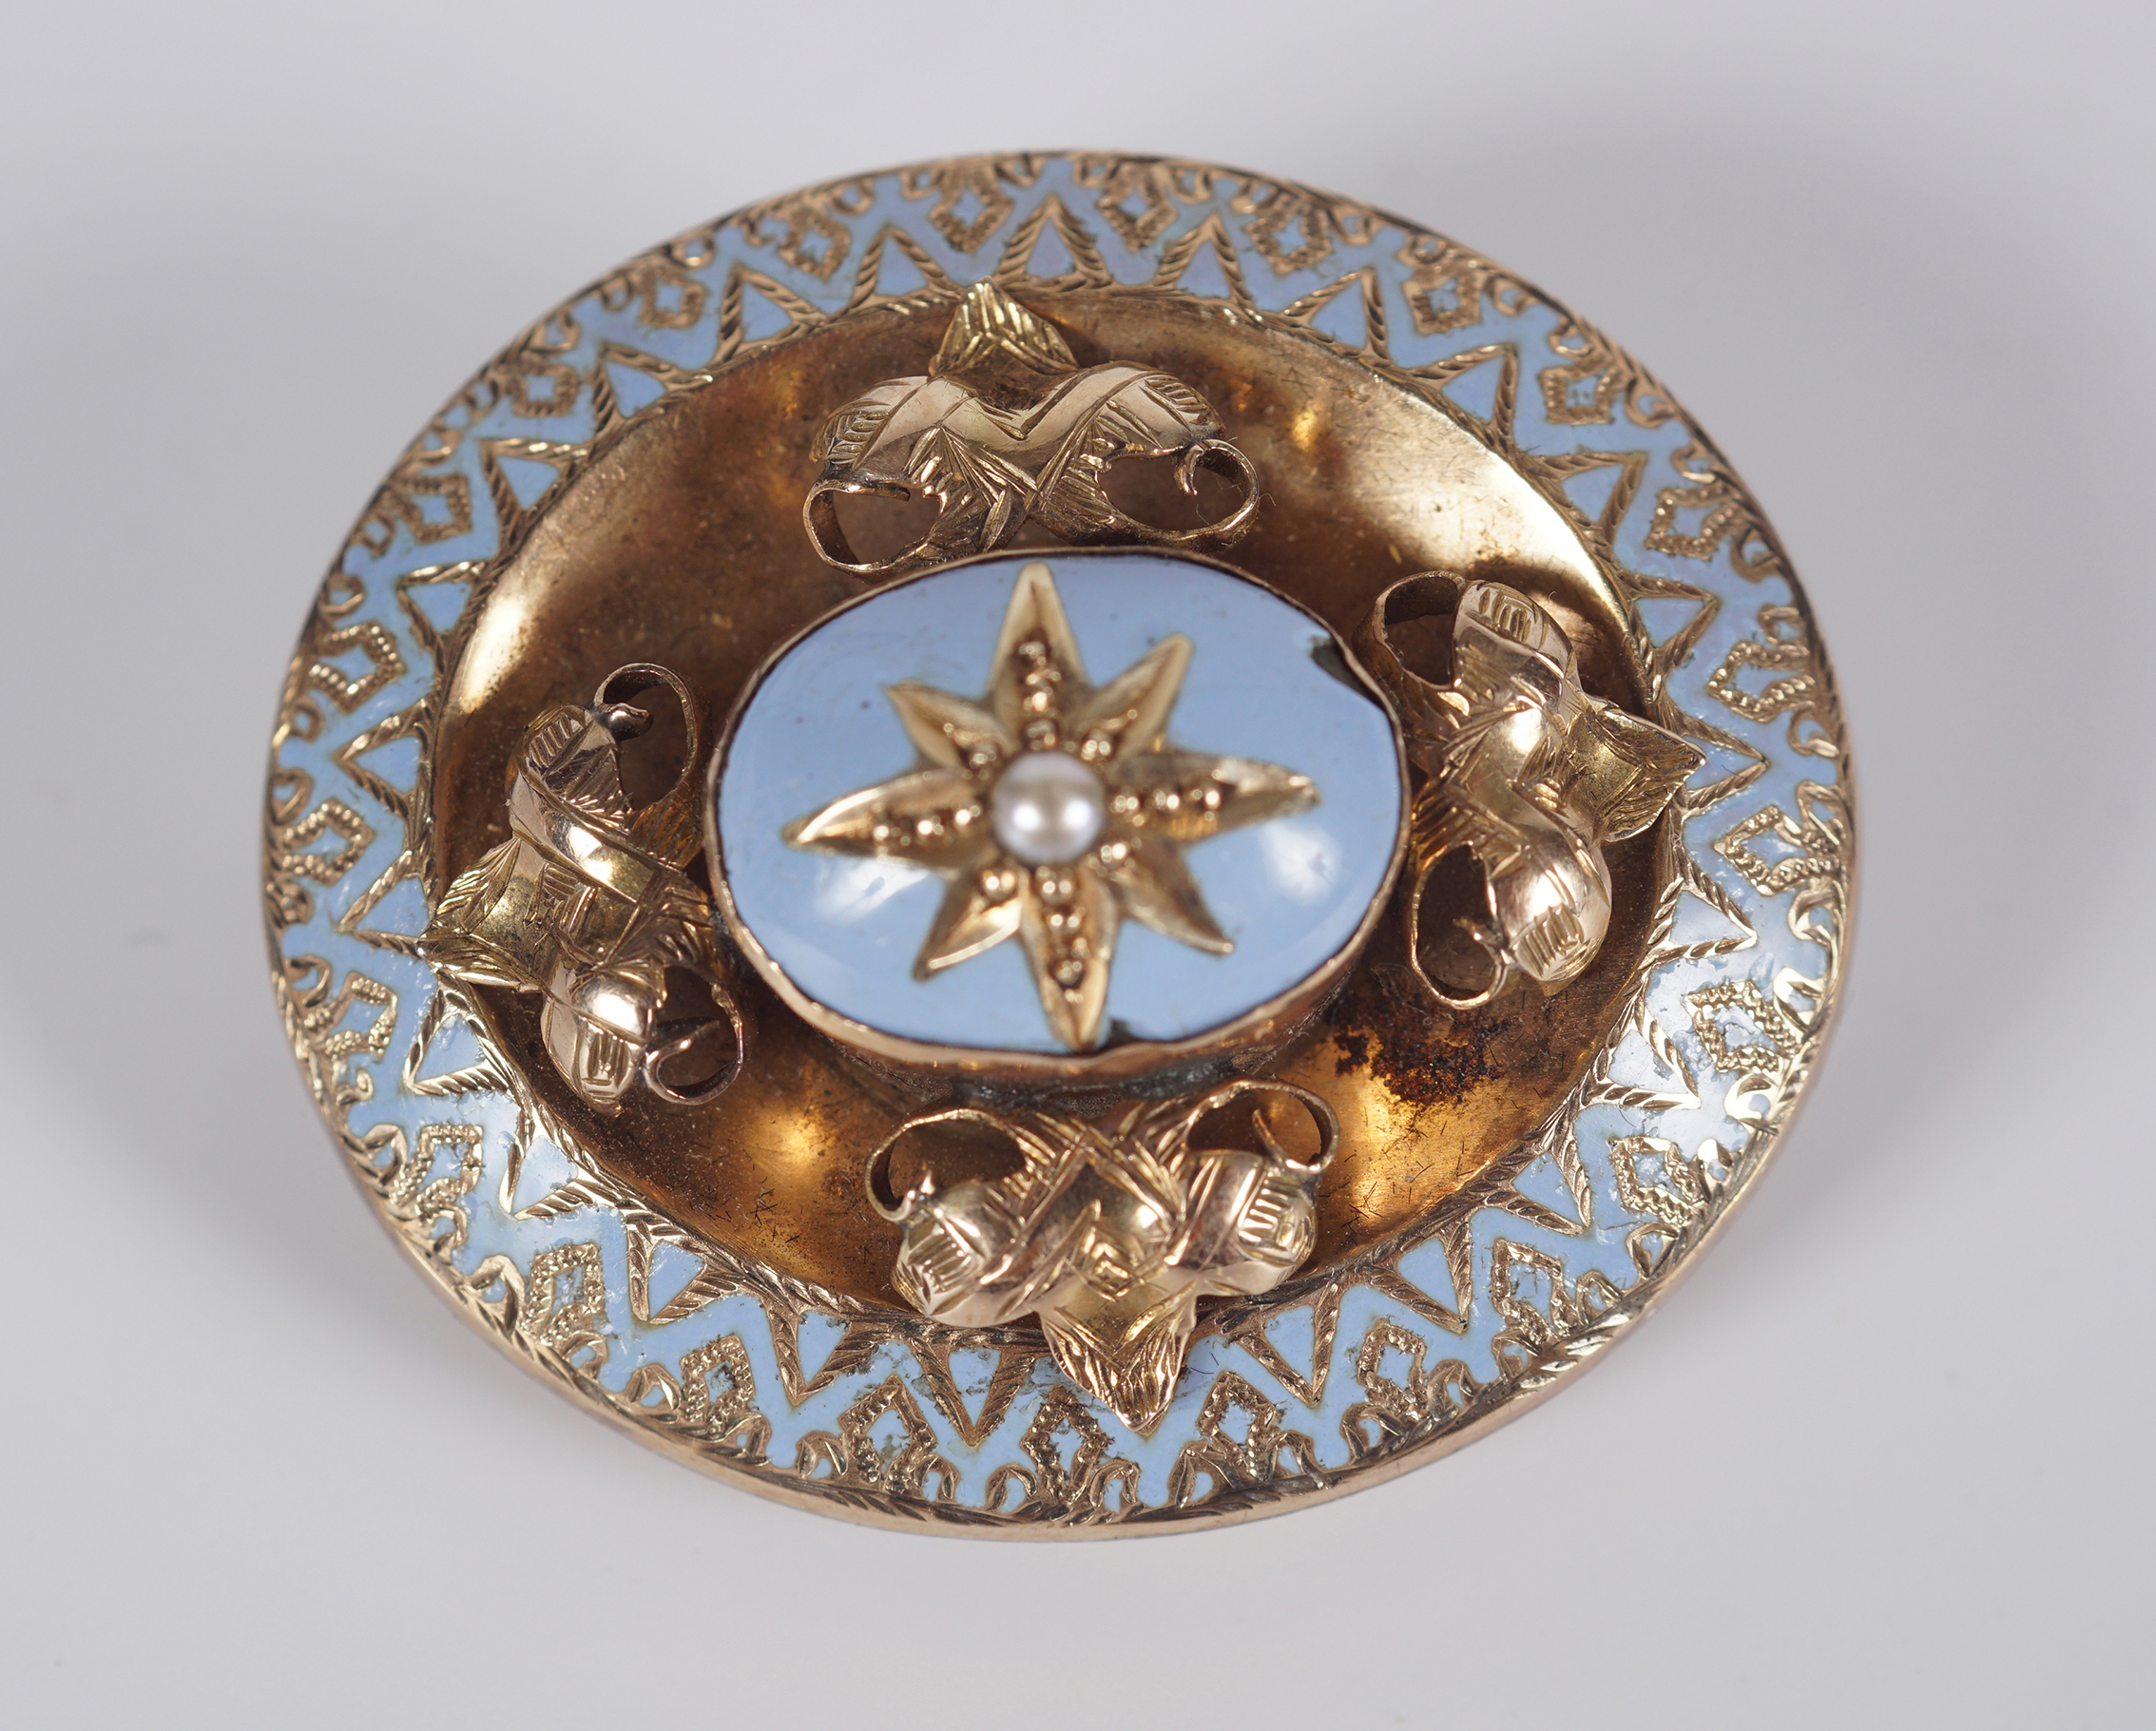 ANTIQUE GOLD AND ENAMEL MOURNING BROOCH